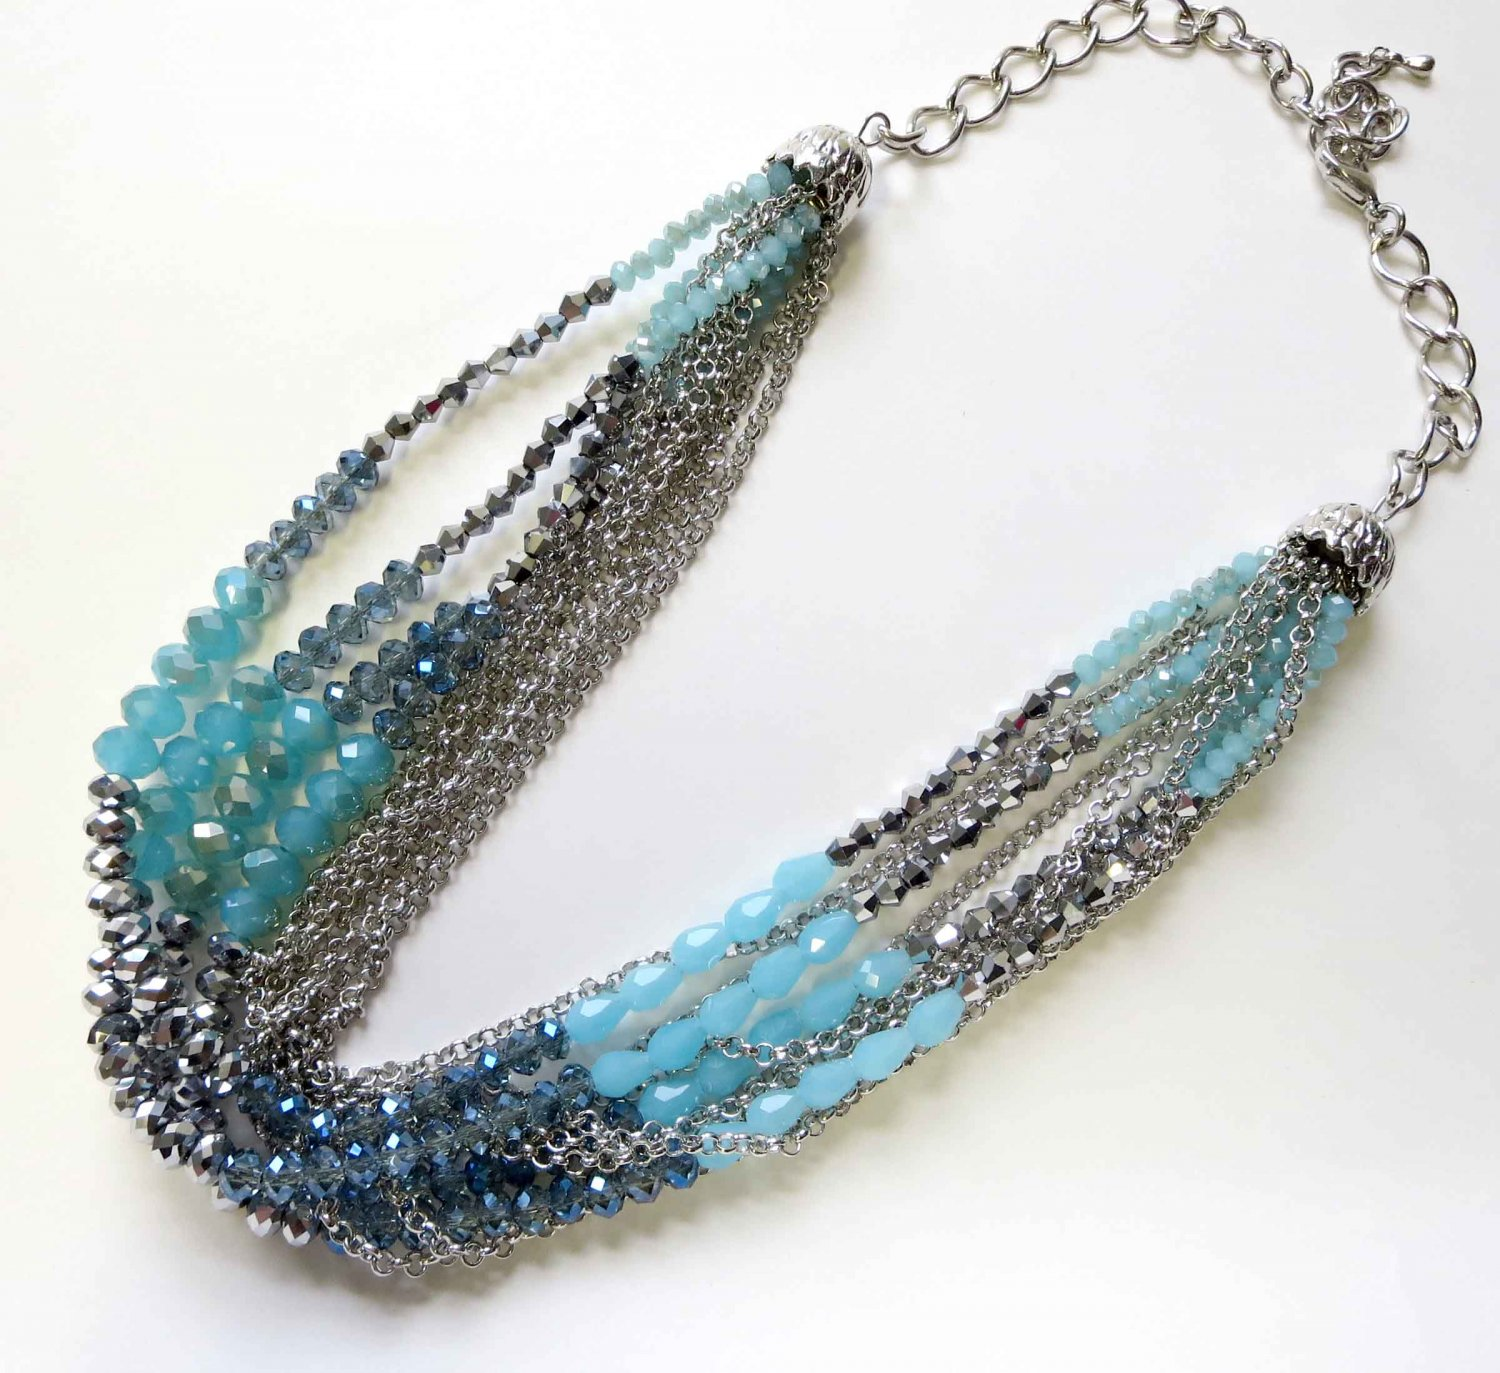 Ombre trendy blue and silver necklace with chains fashion necklace